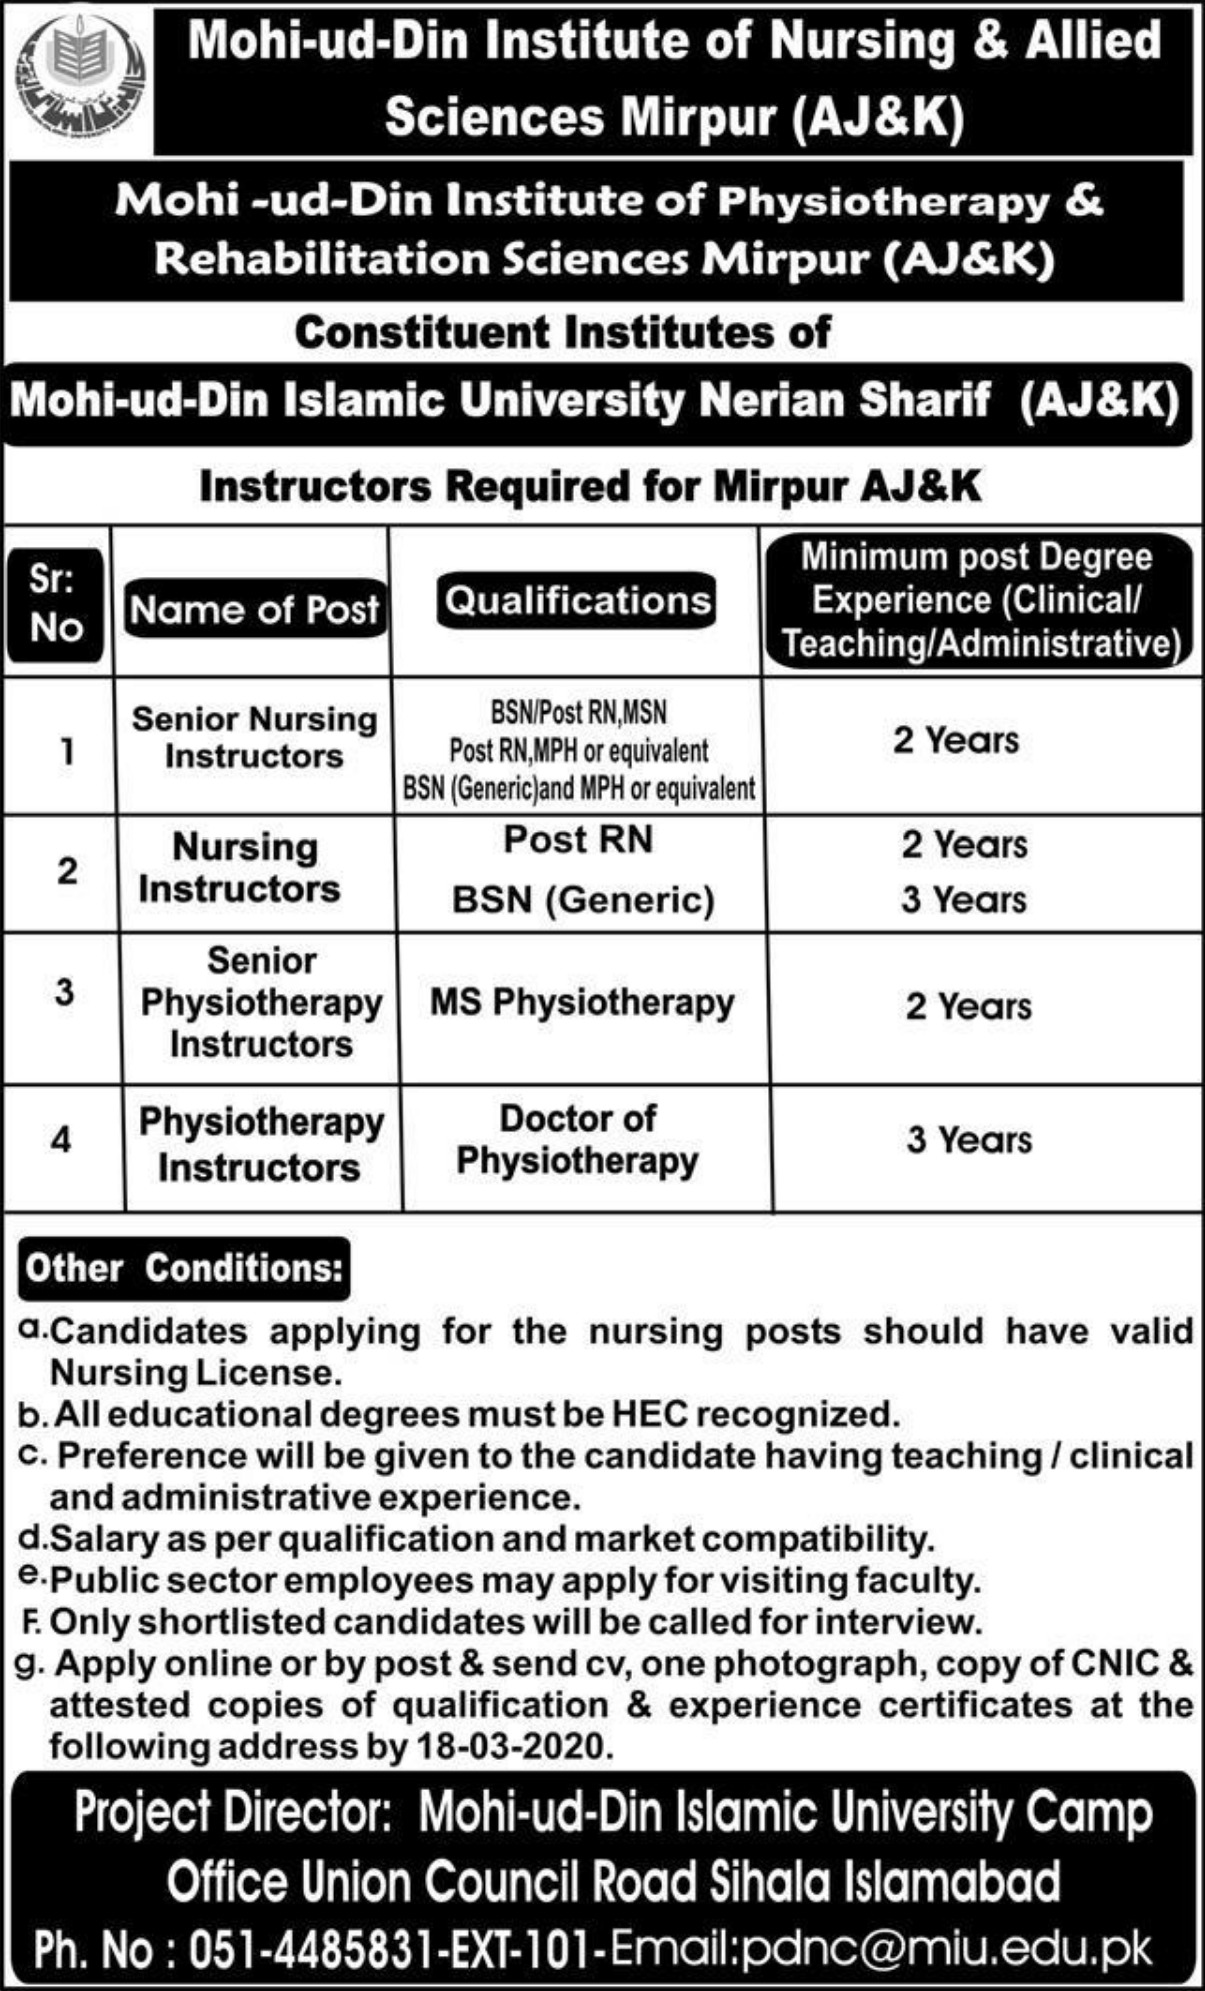 Mohi-ud-Din Institute of Nursing & Allied Sciences Mirpur AJK Jobs 2020